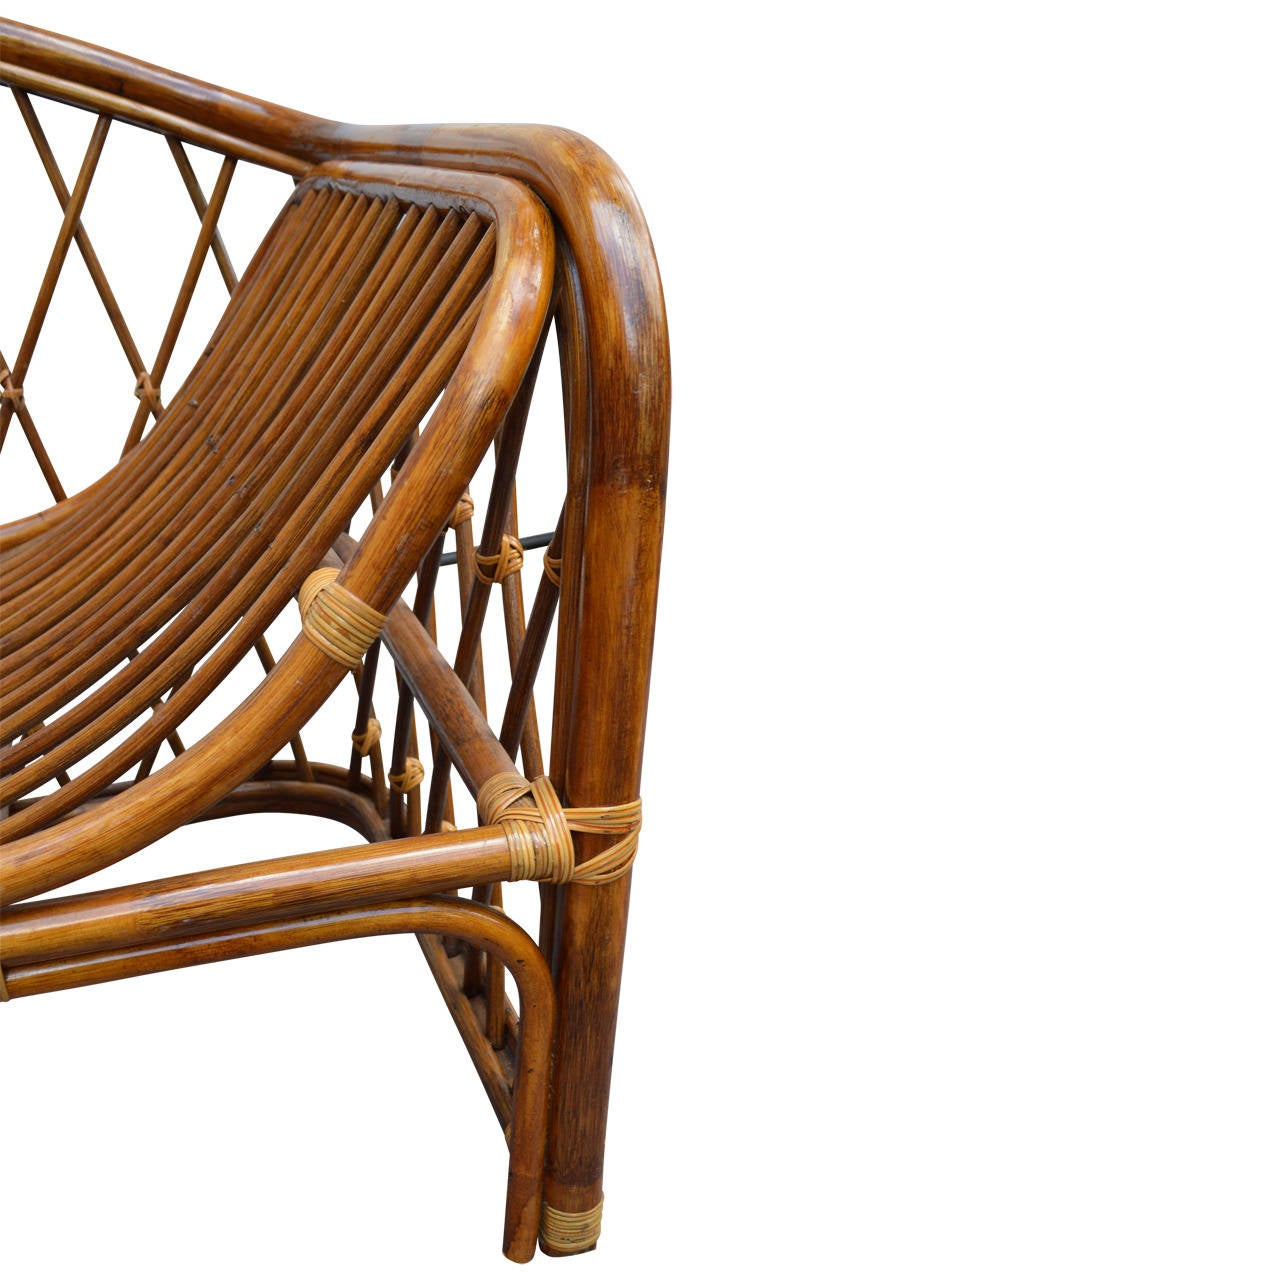 Vintage rattan chaise lounge at 1stdibs for Chaise longue rattan sintetico